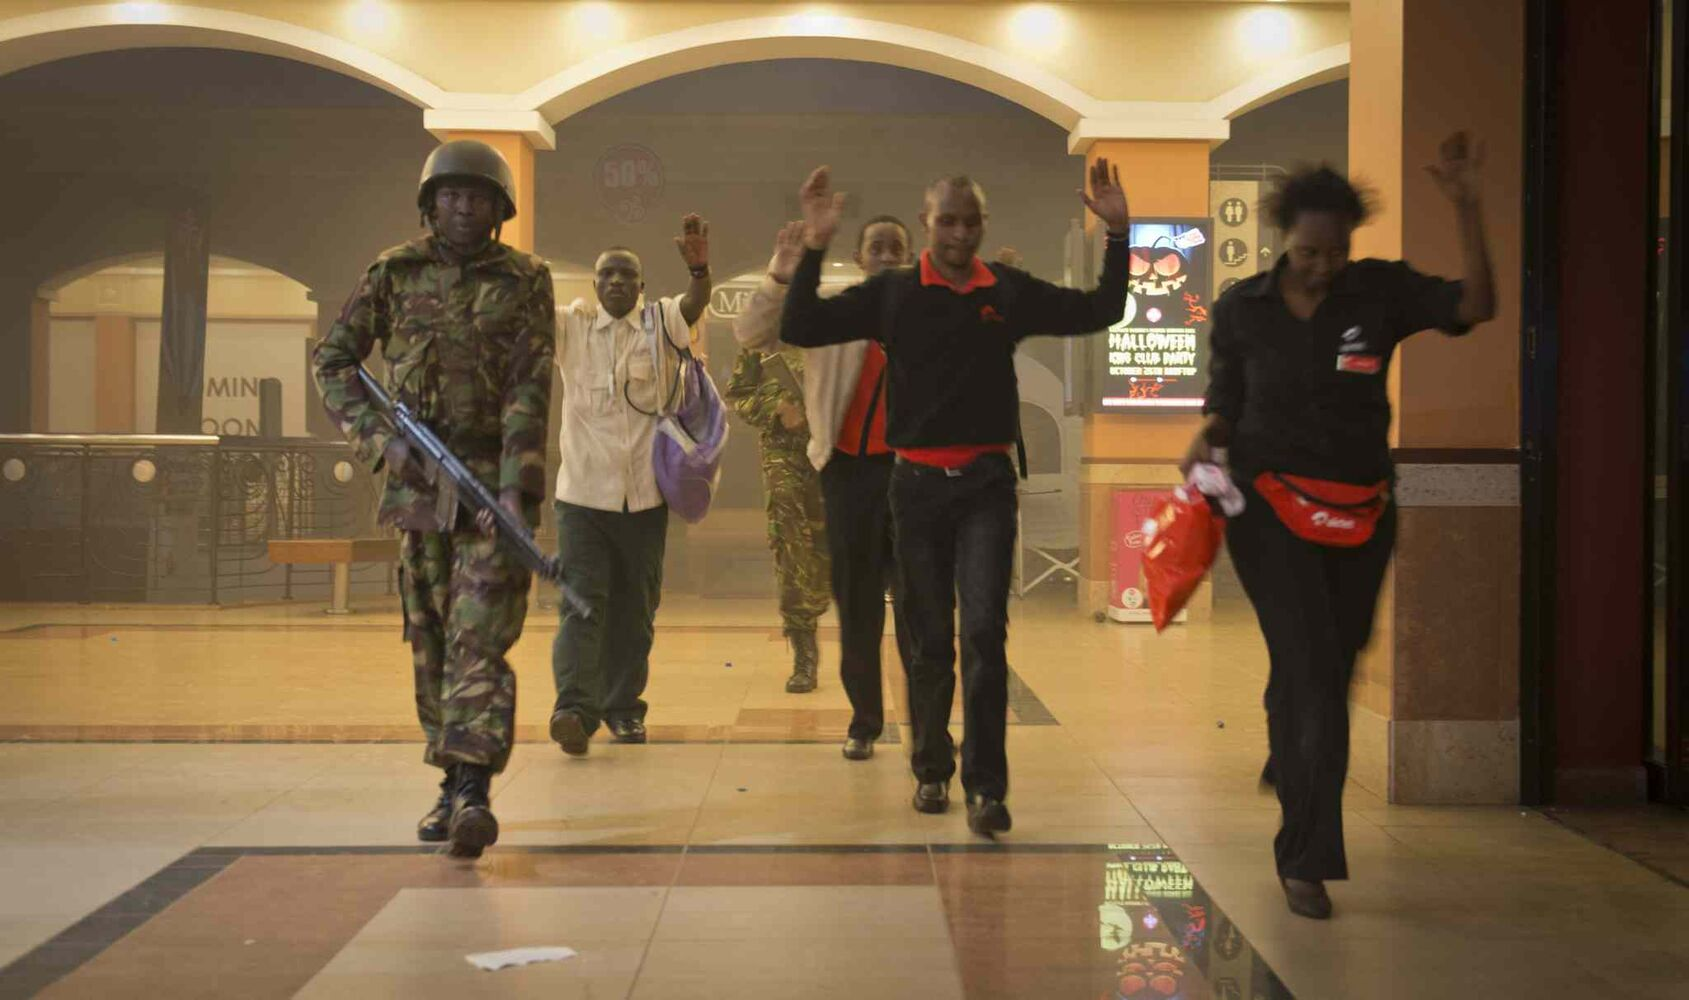 Civilians who had been hiding during the gun battle hold their hands in the air as a precautionary measure before being searched by armed police leading them to safety, inside the Westgate Mall in Nairobi, Kenya, Saturday. Gunmen threw grenades and opened fire Saturday, killing at least 22 people in an attack targeting non-Muslims at an upscale mall in Kenya's capital that was hosting a children's day event, a Red Cross official and witnesses said.  (Jonathan Kalan / The Associated Press)